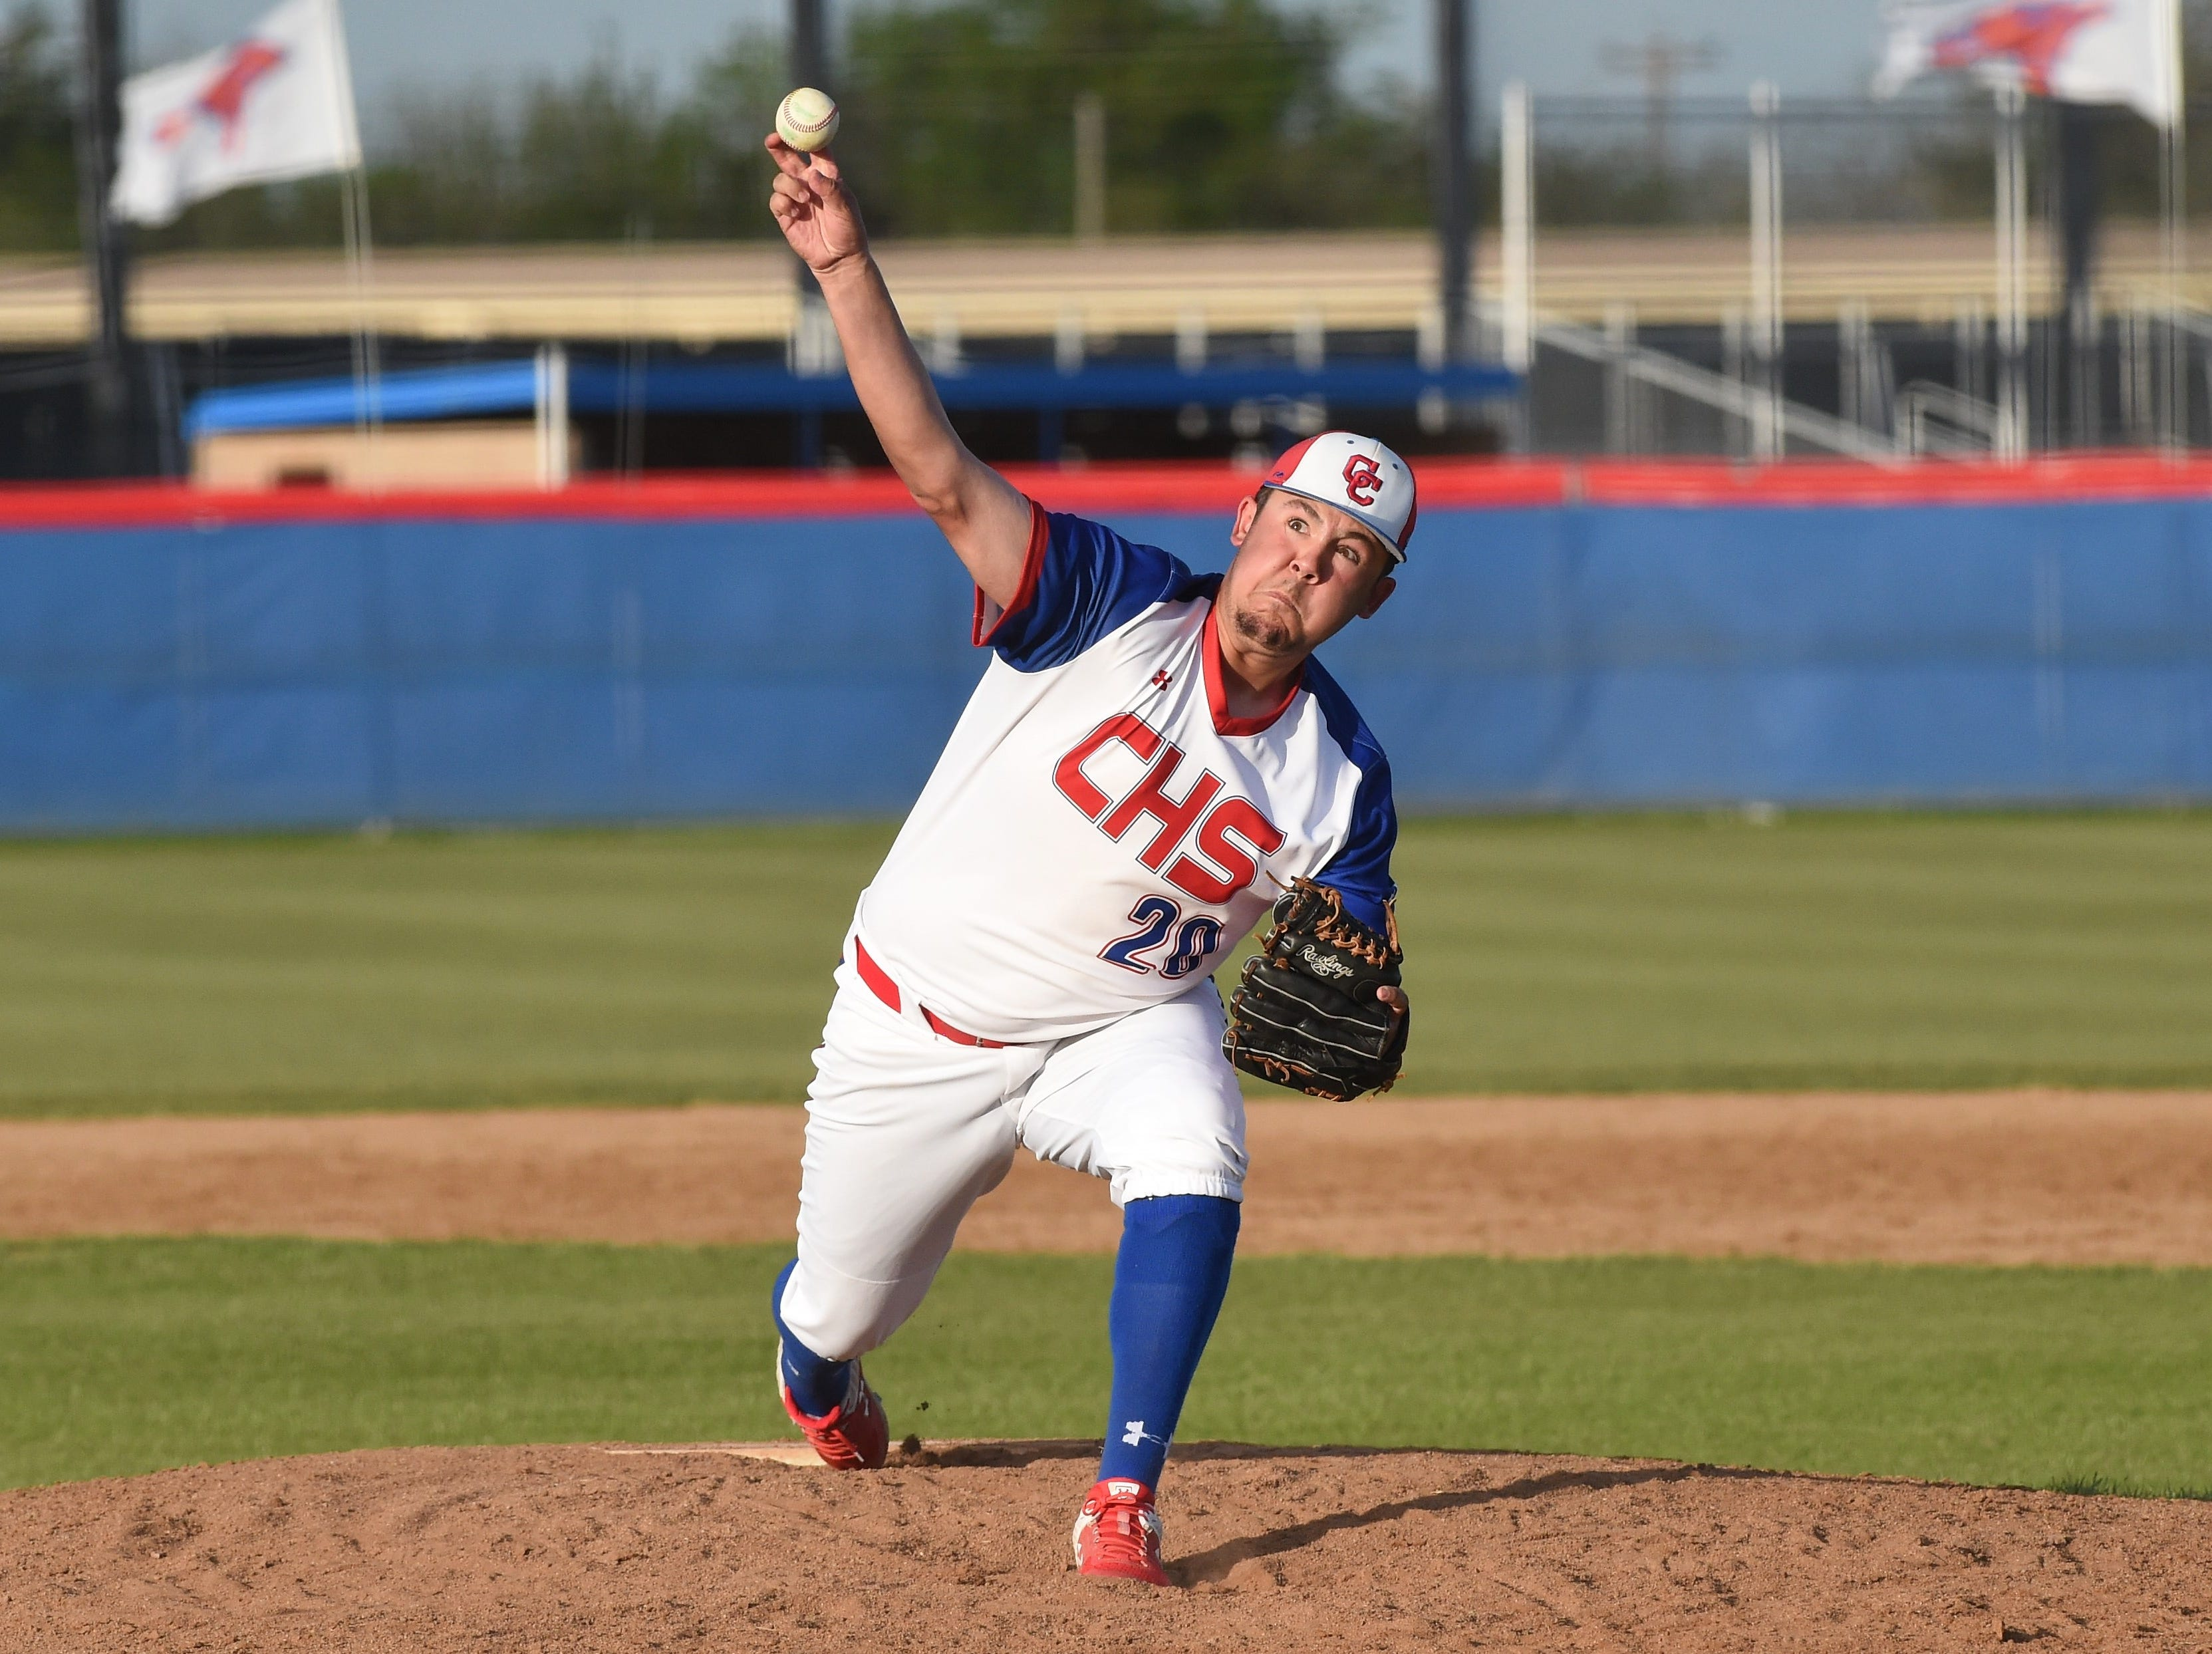 Cooper reliever Andrew Gomez (20) lets go of a pitch against Wylie at Cougar Field on Tuesday, April 9, 2019. Gomez worked 1.1 no-hit, shutout innings in the 11-5 loss.